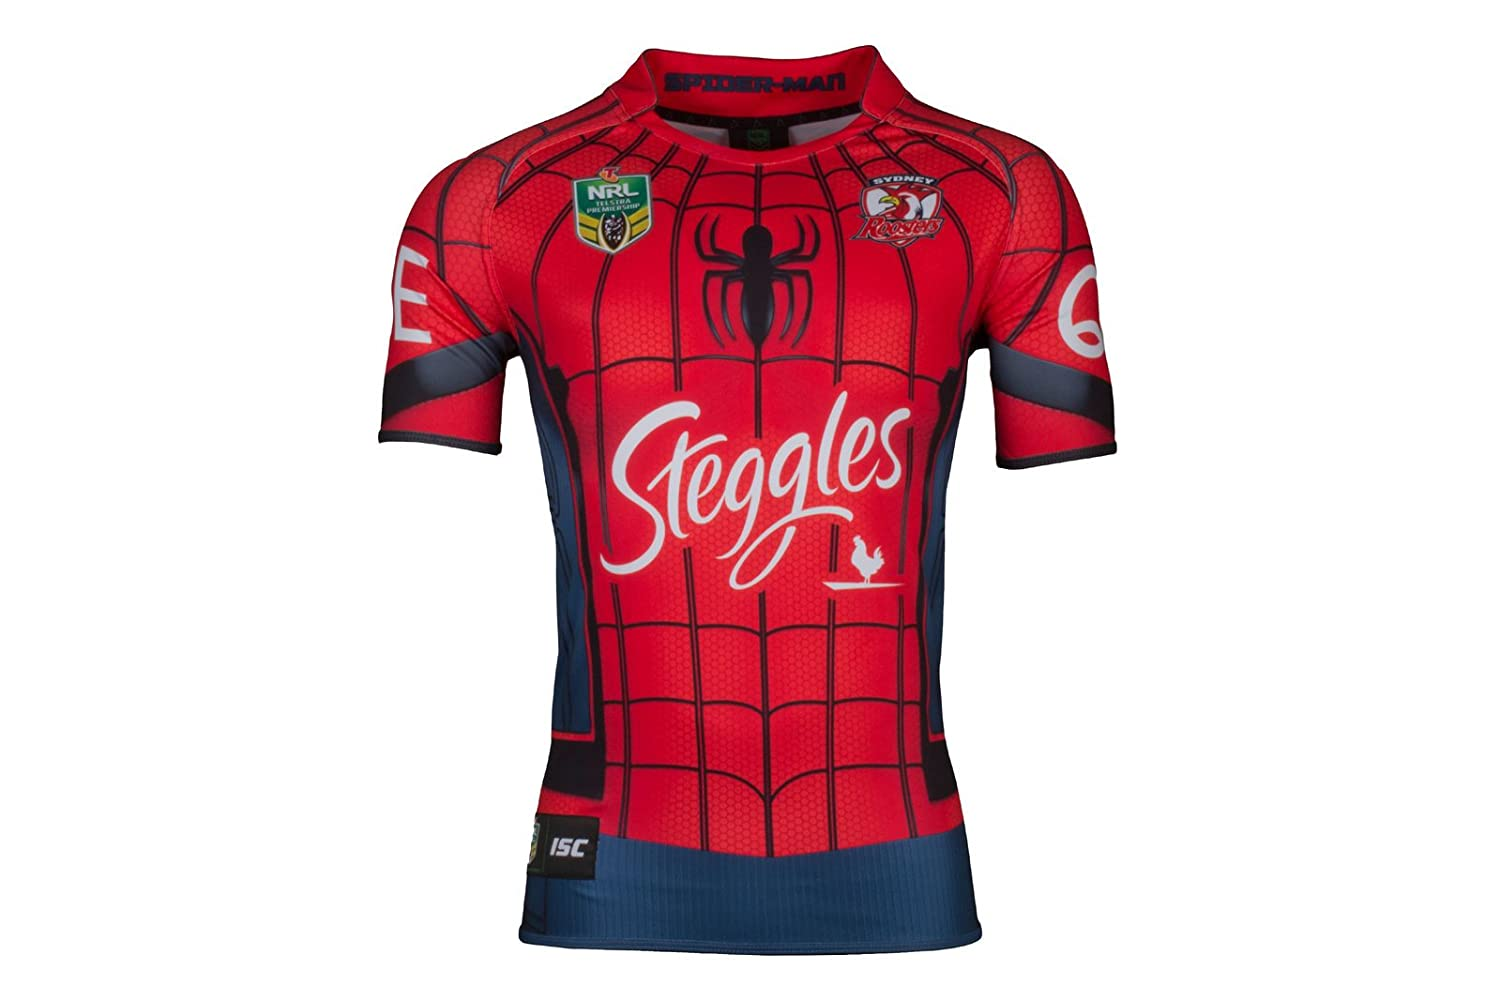 a586ac675b0 Sydney Roosters 2017 NRL Spiderman Marvel S/S Ltd Edition Rugby Shirt -  Size 4XL: Amazon.co.uk: Clothing